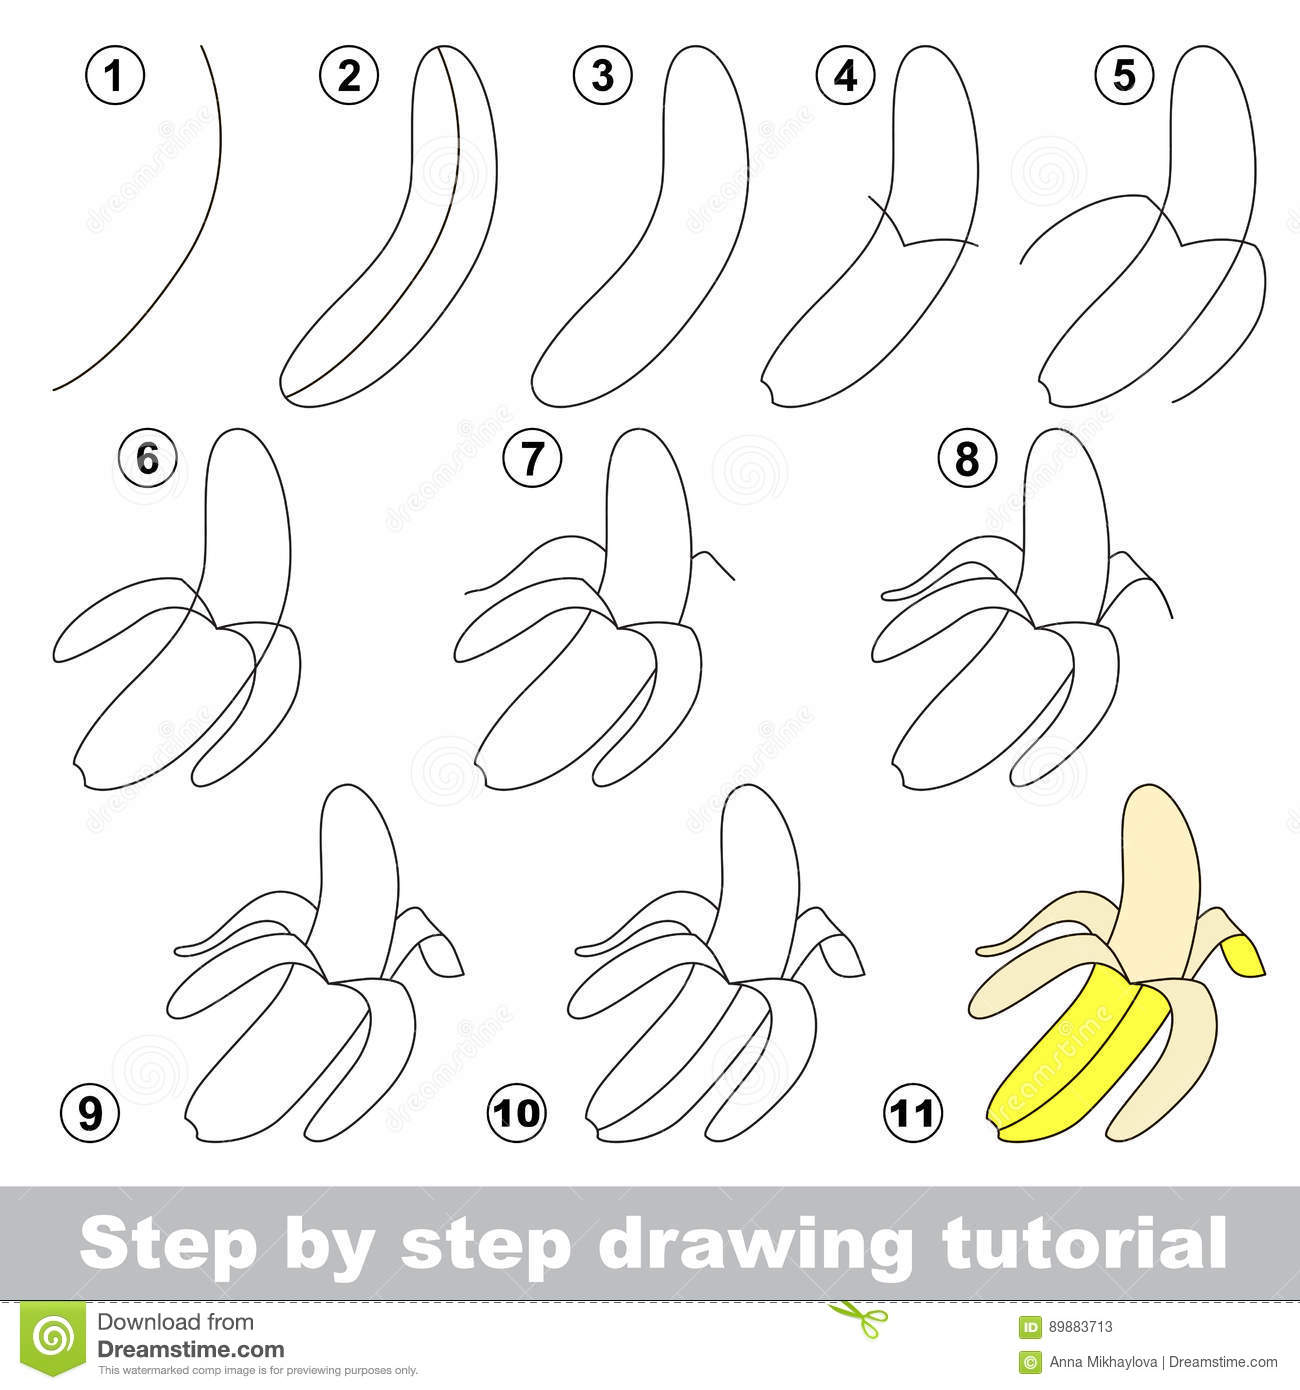 Drawing tutorial banana